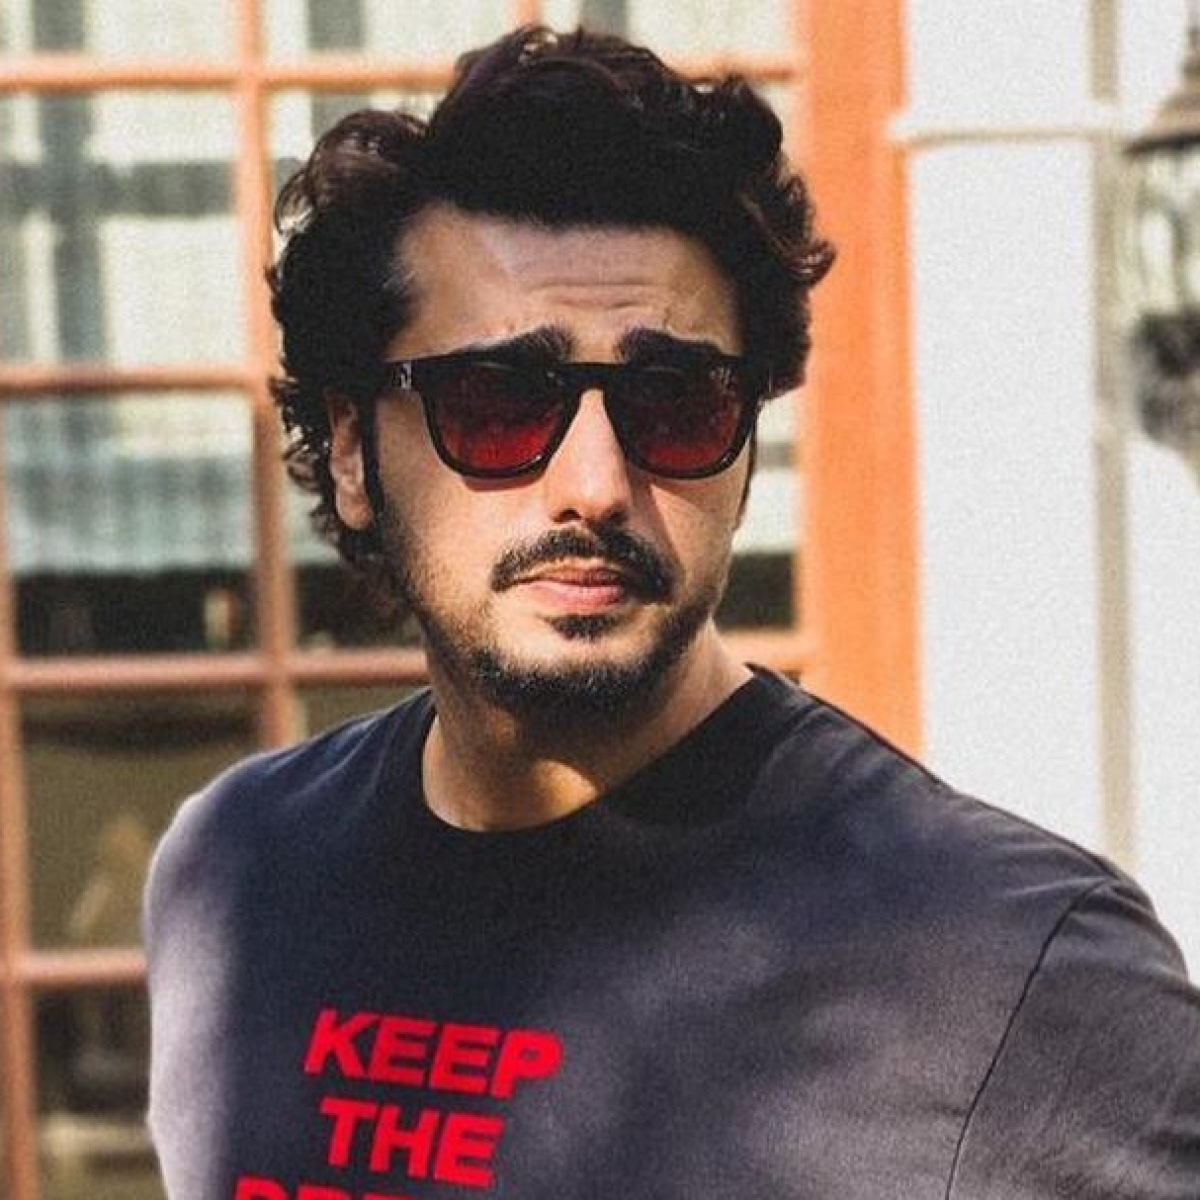 'Sitting in Mumbai one doesn't have to deal with patriarchy': Arjun Kapoor